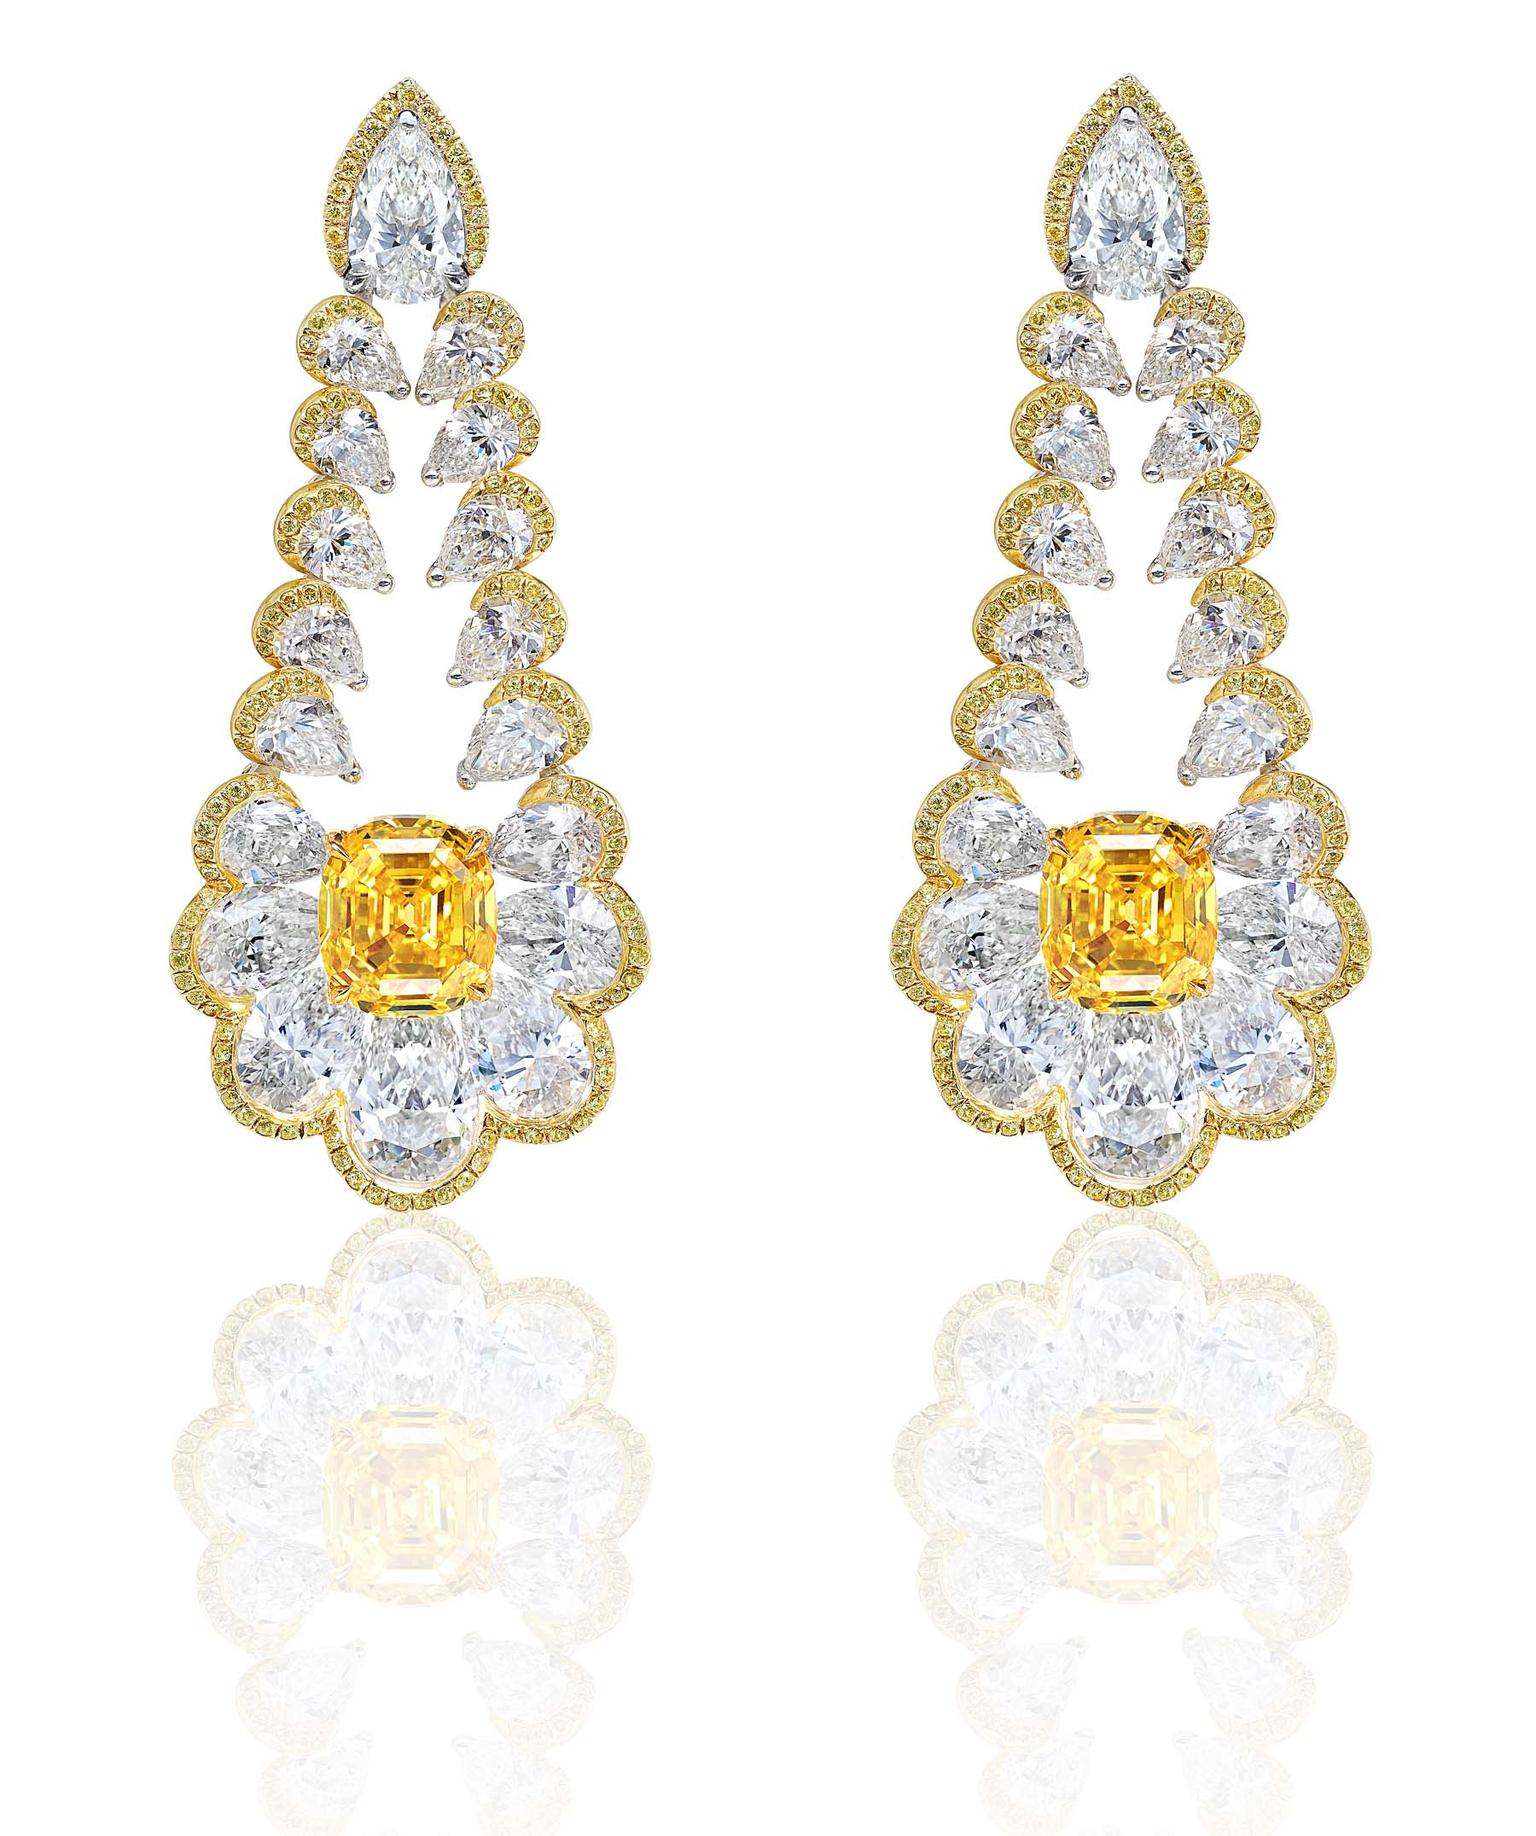 Chopard Red Carpet Collection 2014 earrings